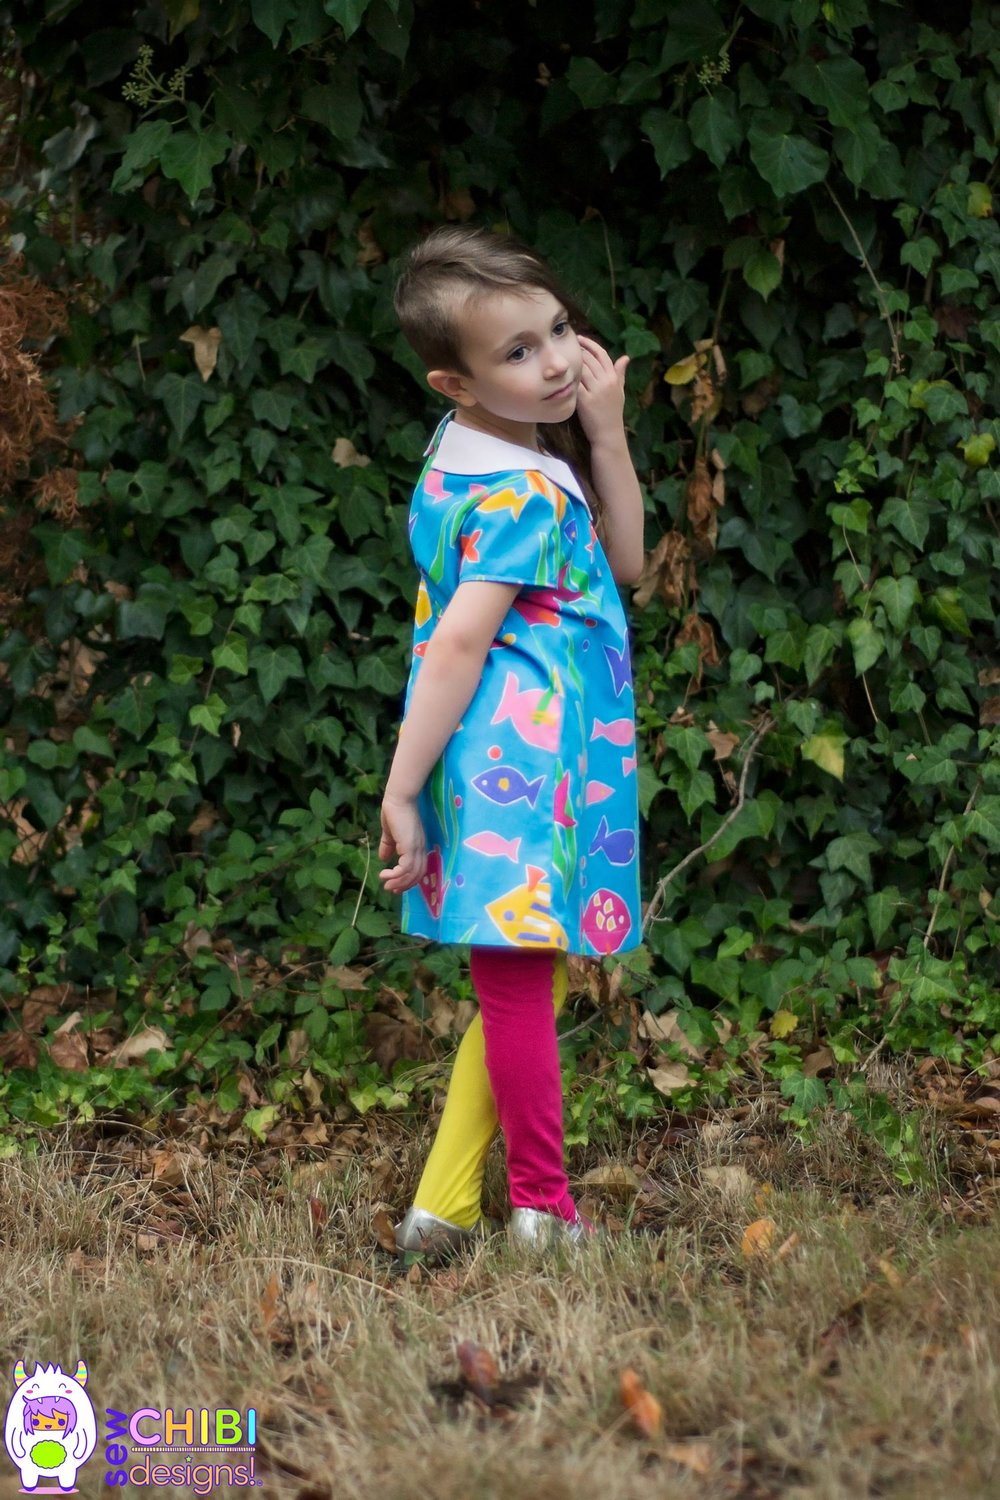 eleena-dress-pdf-pattern-first-day-of-school-18.jpg